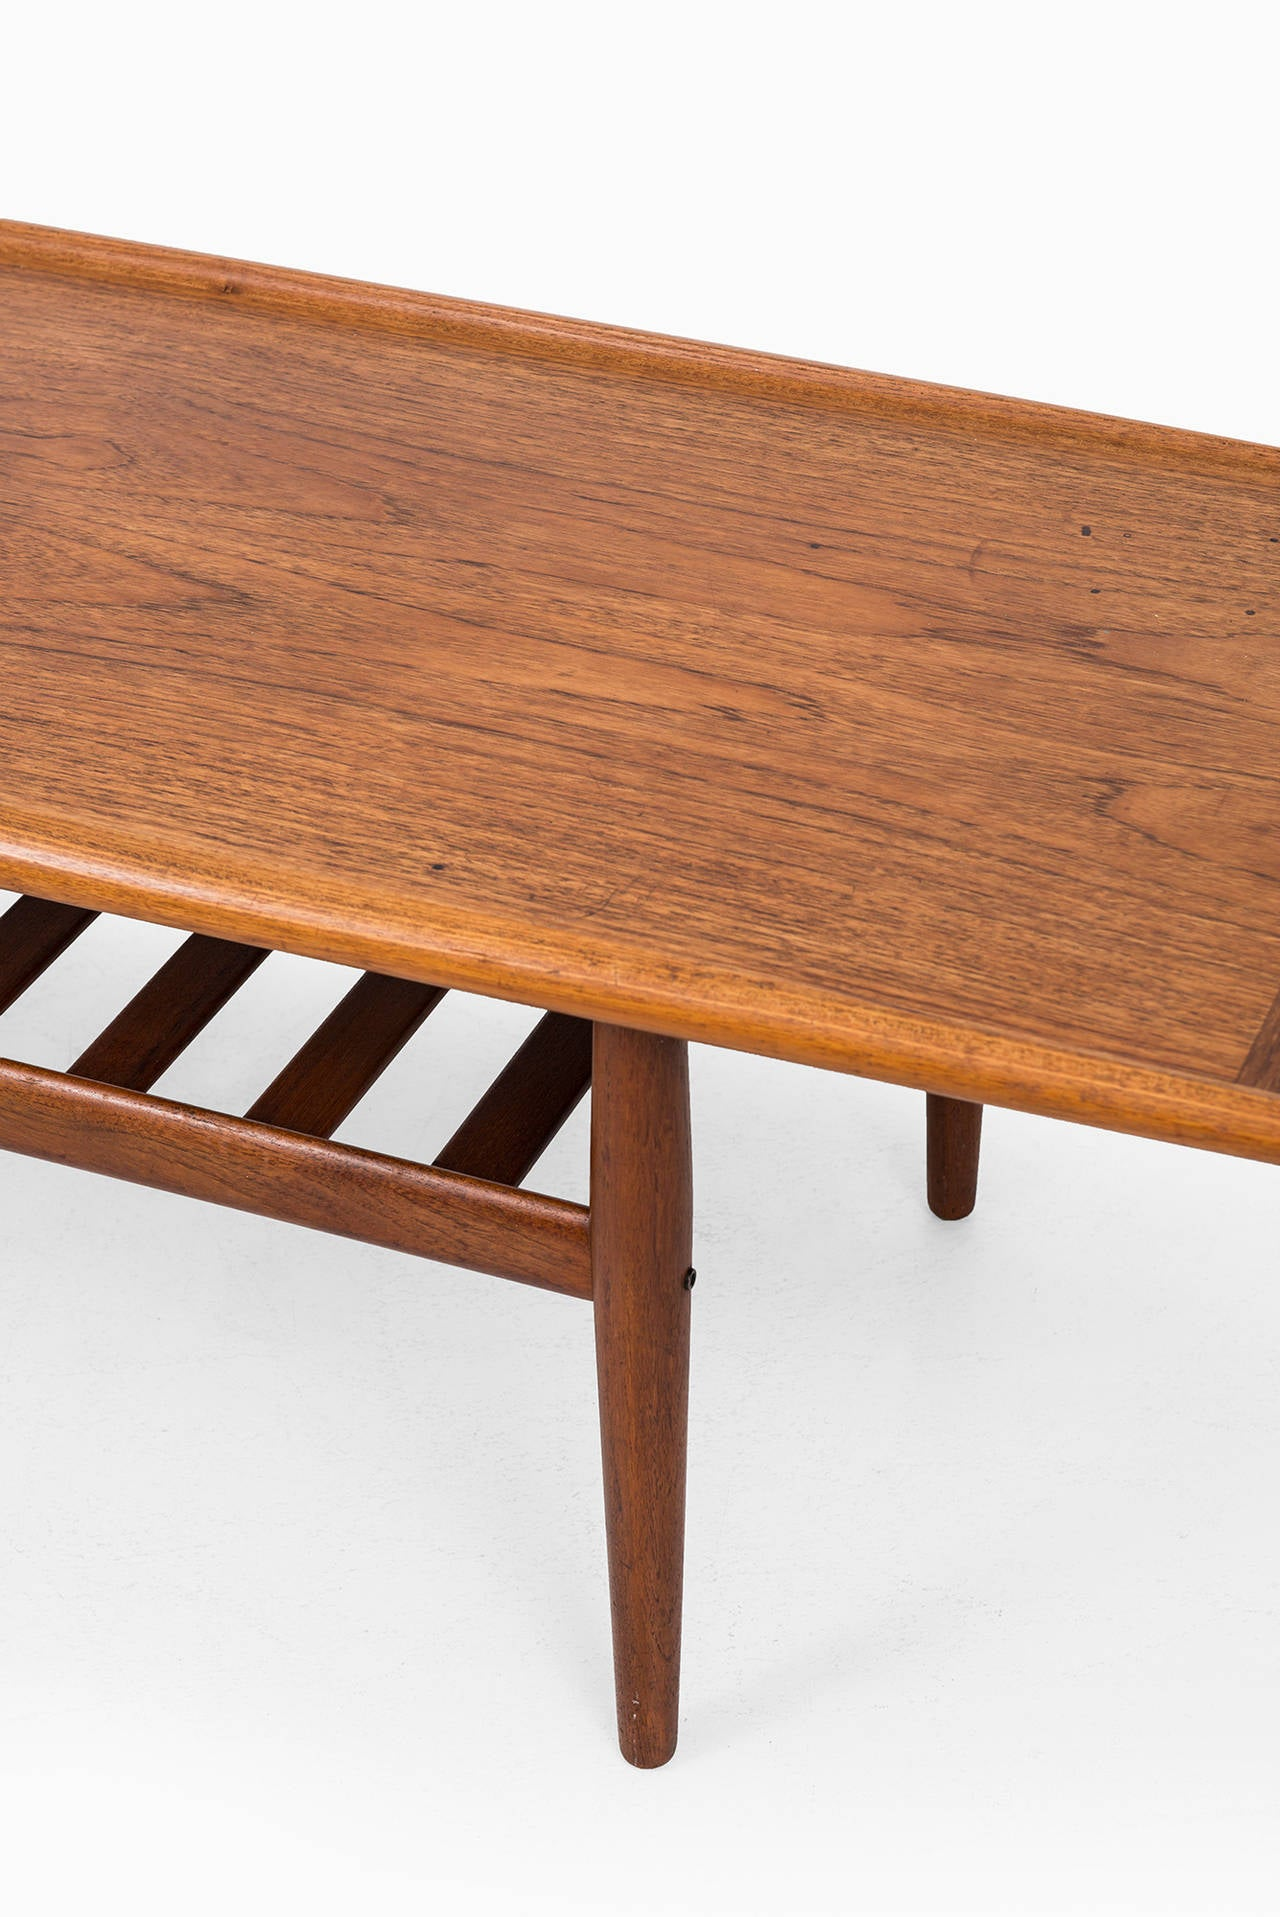 Mid-20th Century Grete Jalk Coffee Table in Teak by Glostrup Møbelfabrik in Denmark For Sale